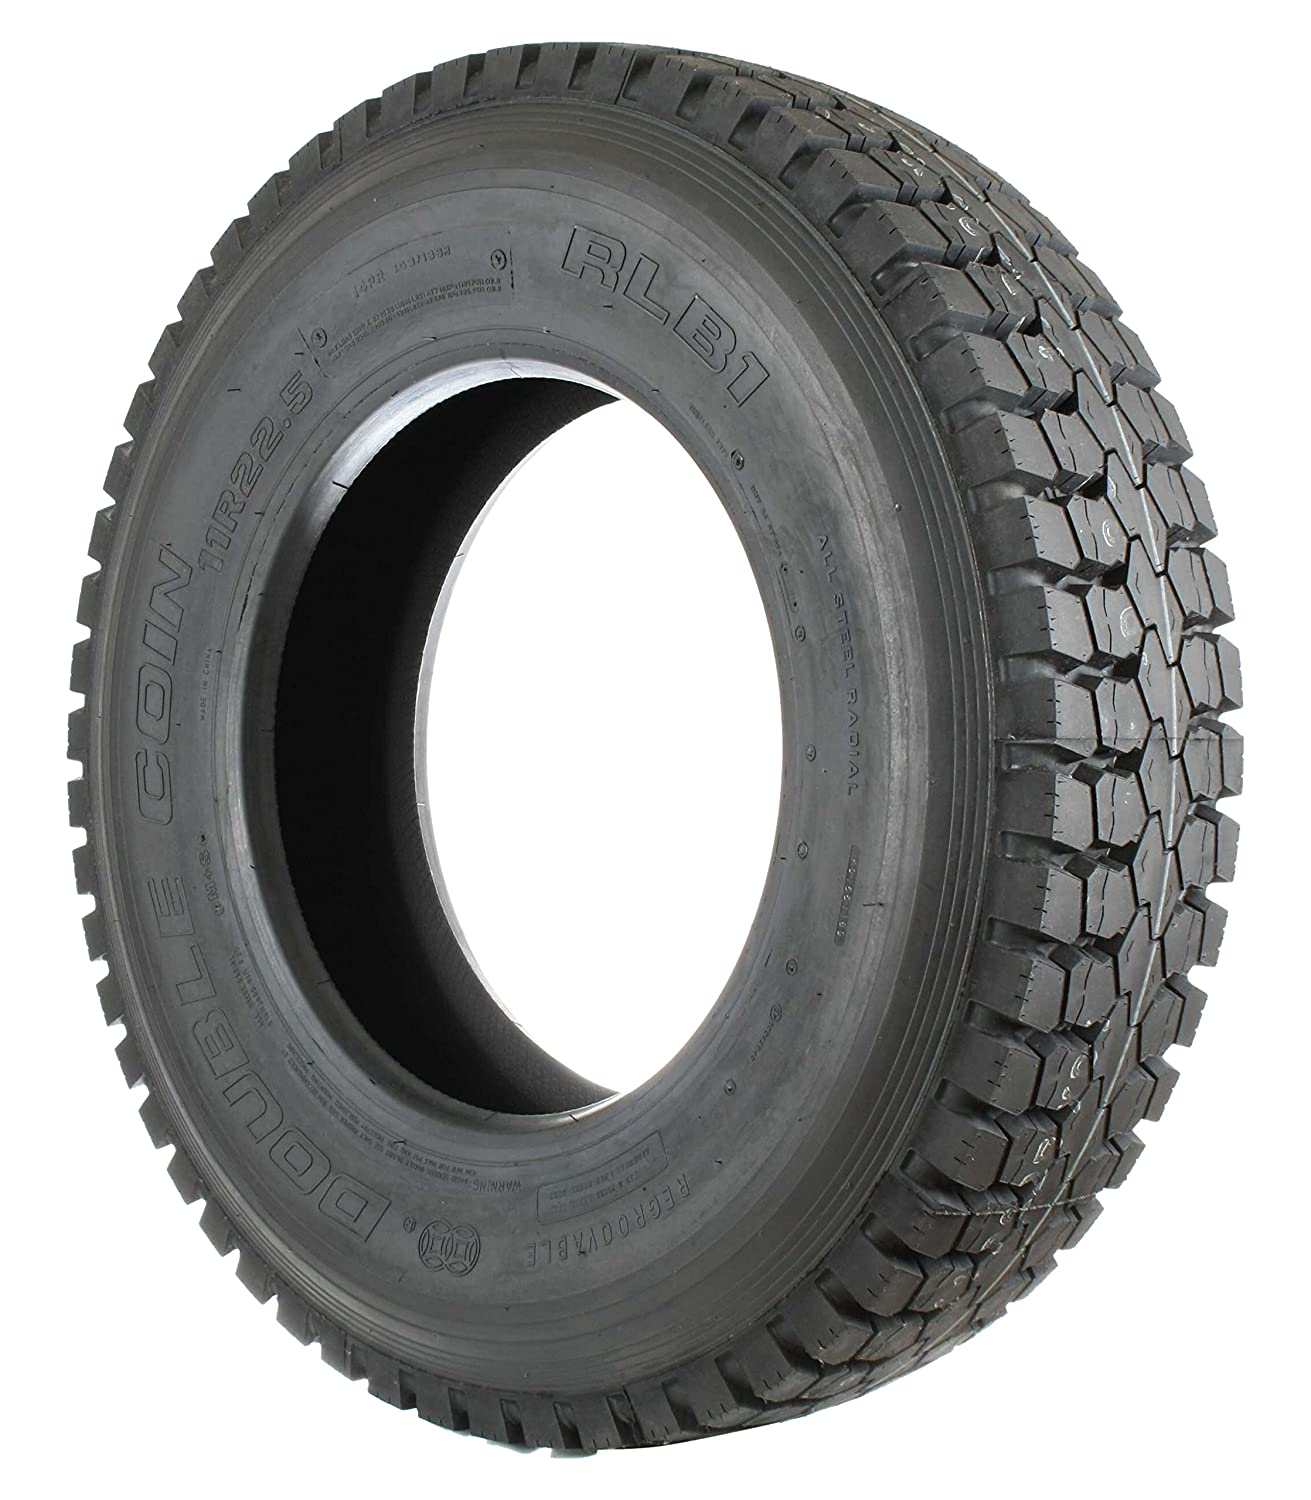 Double Coin RLB1 Open Shoulder Drive-Position Commercial Radial Truck Tire  - 10R22.5